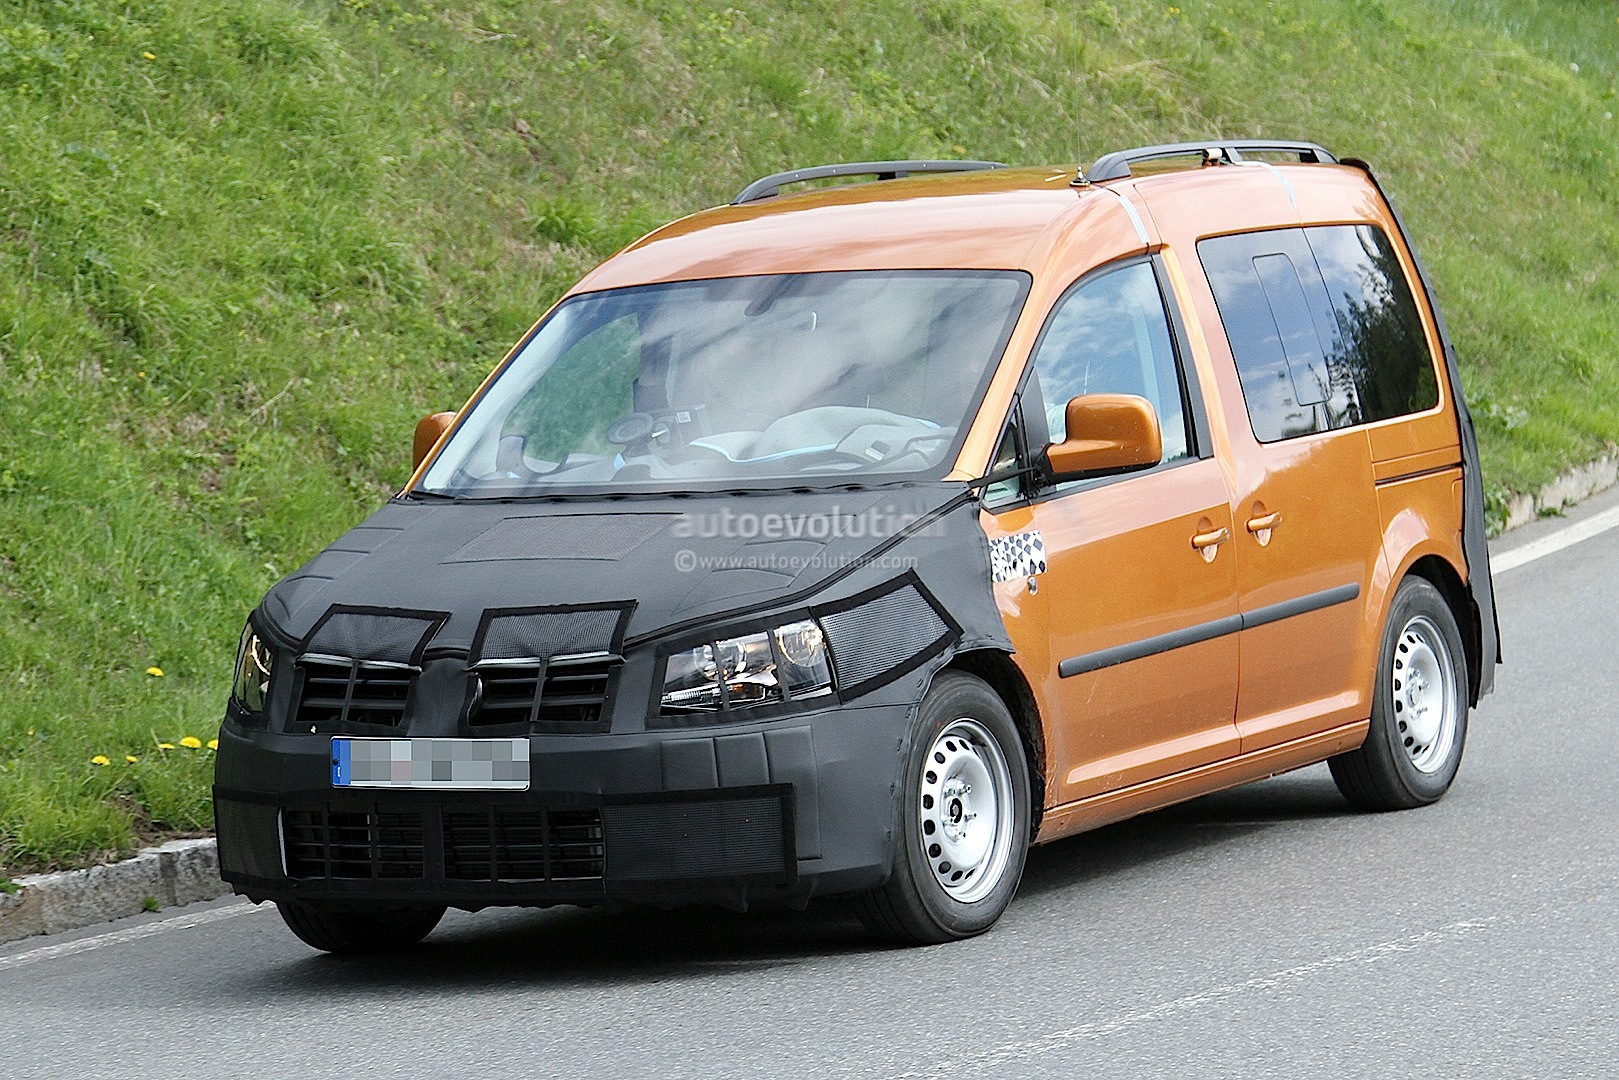 New Volkswagen Caddy Spied Testing for 2015 Launch - autoevolution